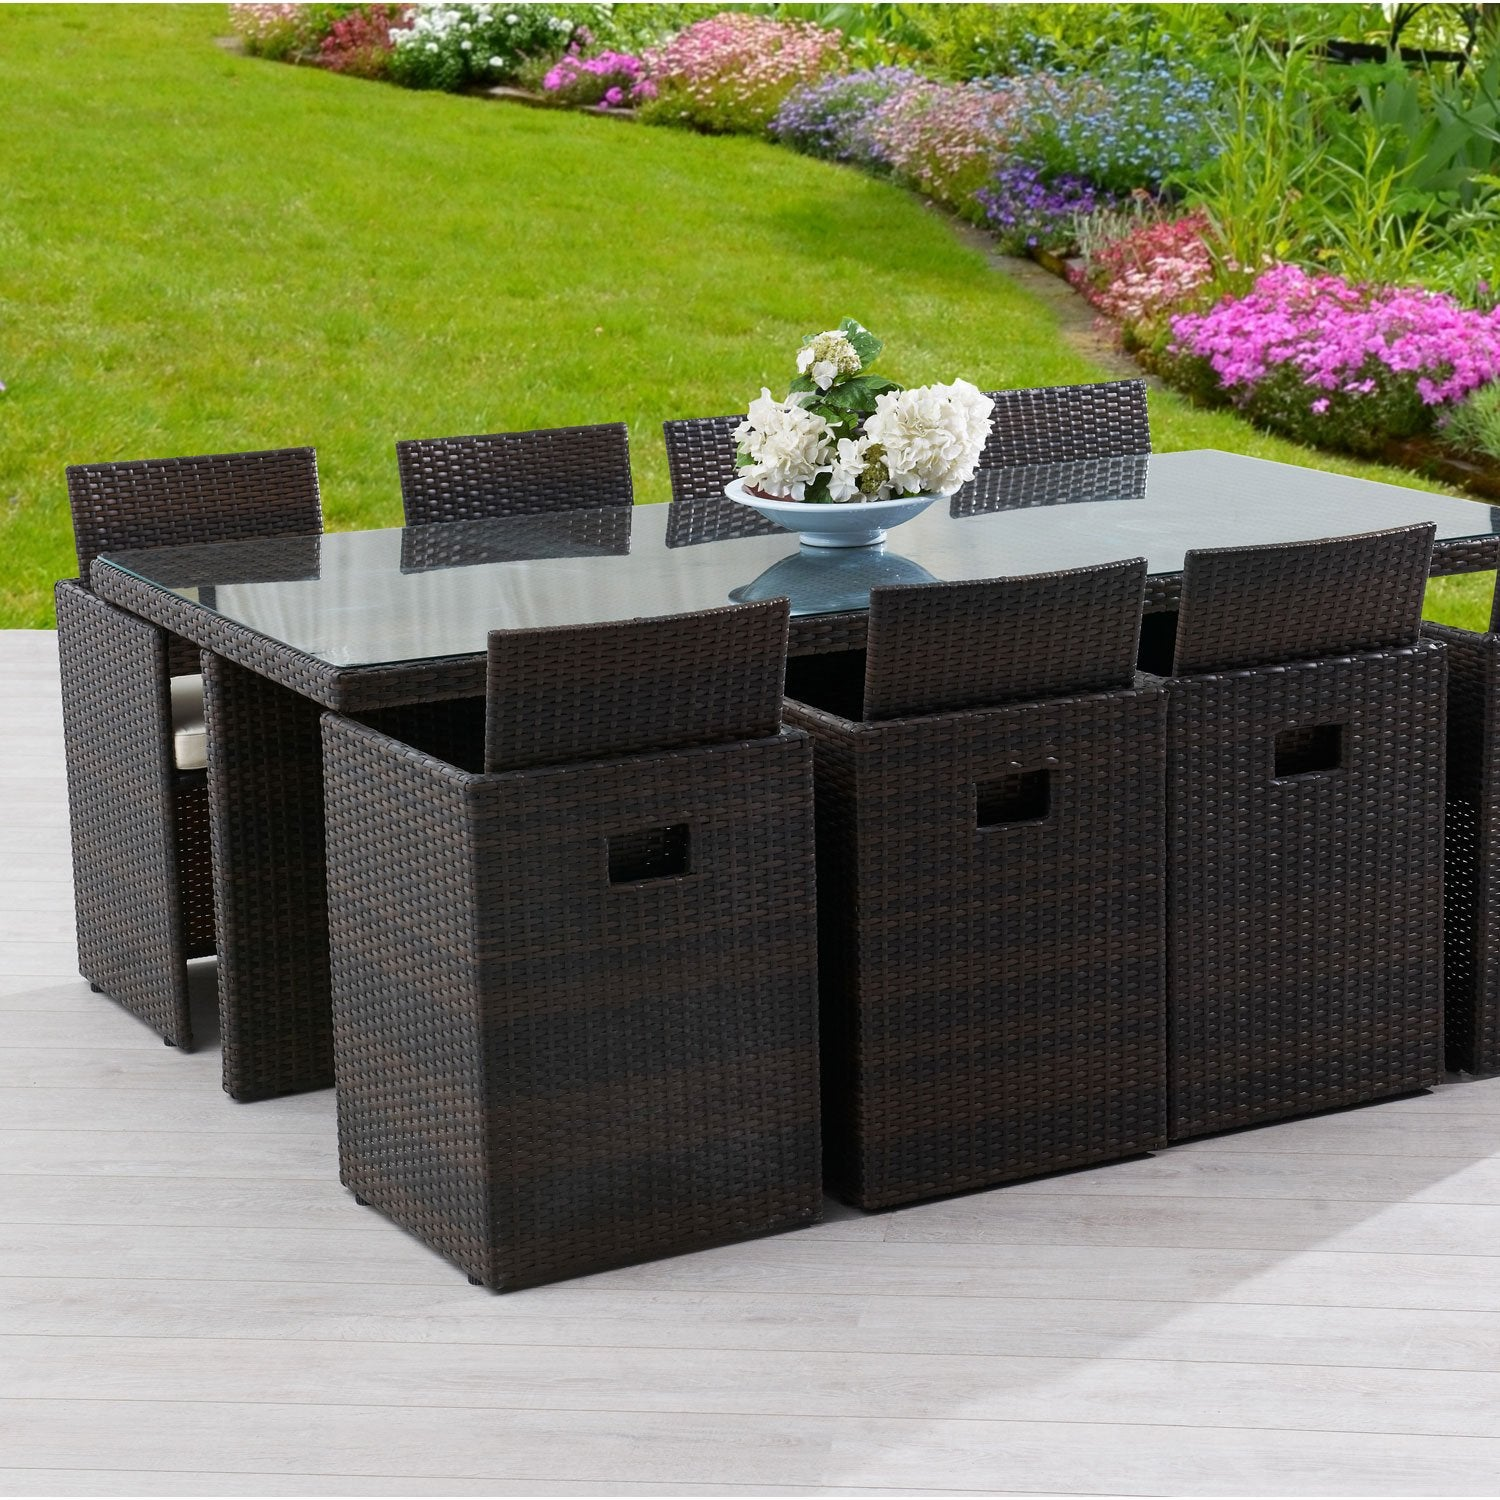 Salon de jardin encastrable r sine tress e marron 1 table - Salon jardin tresse resine ...